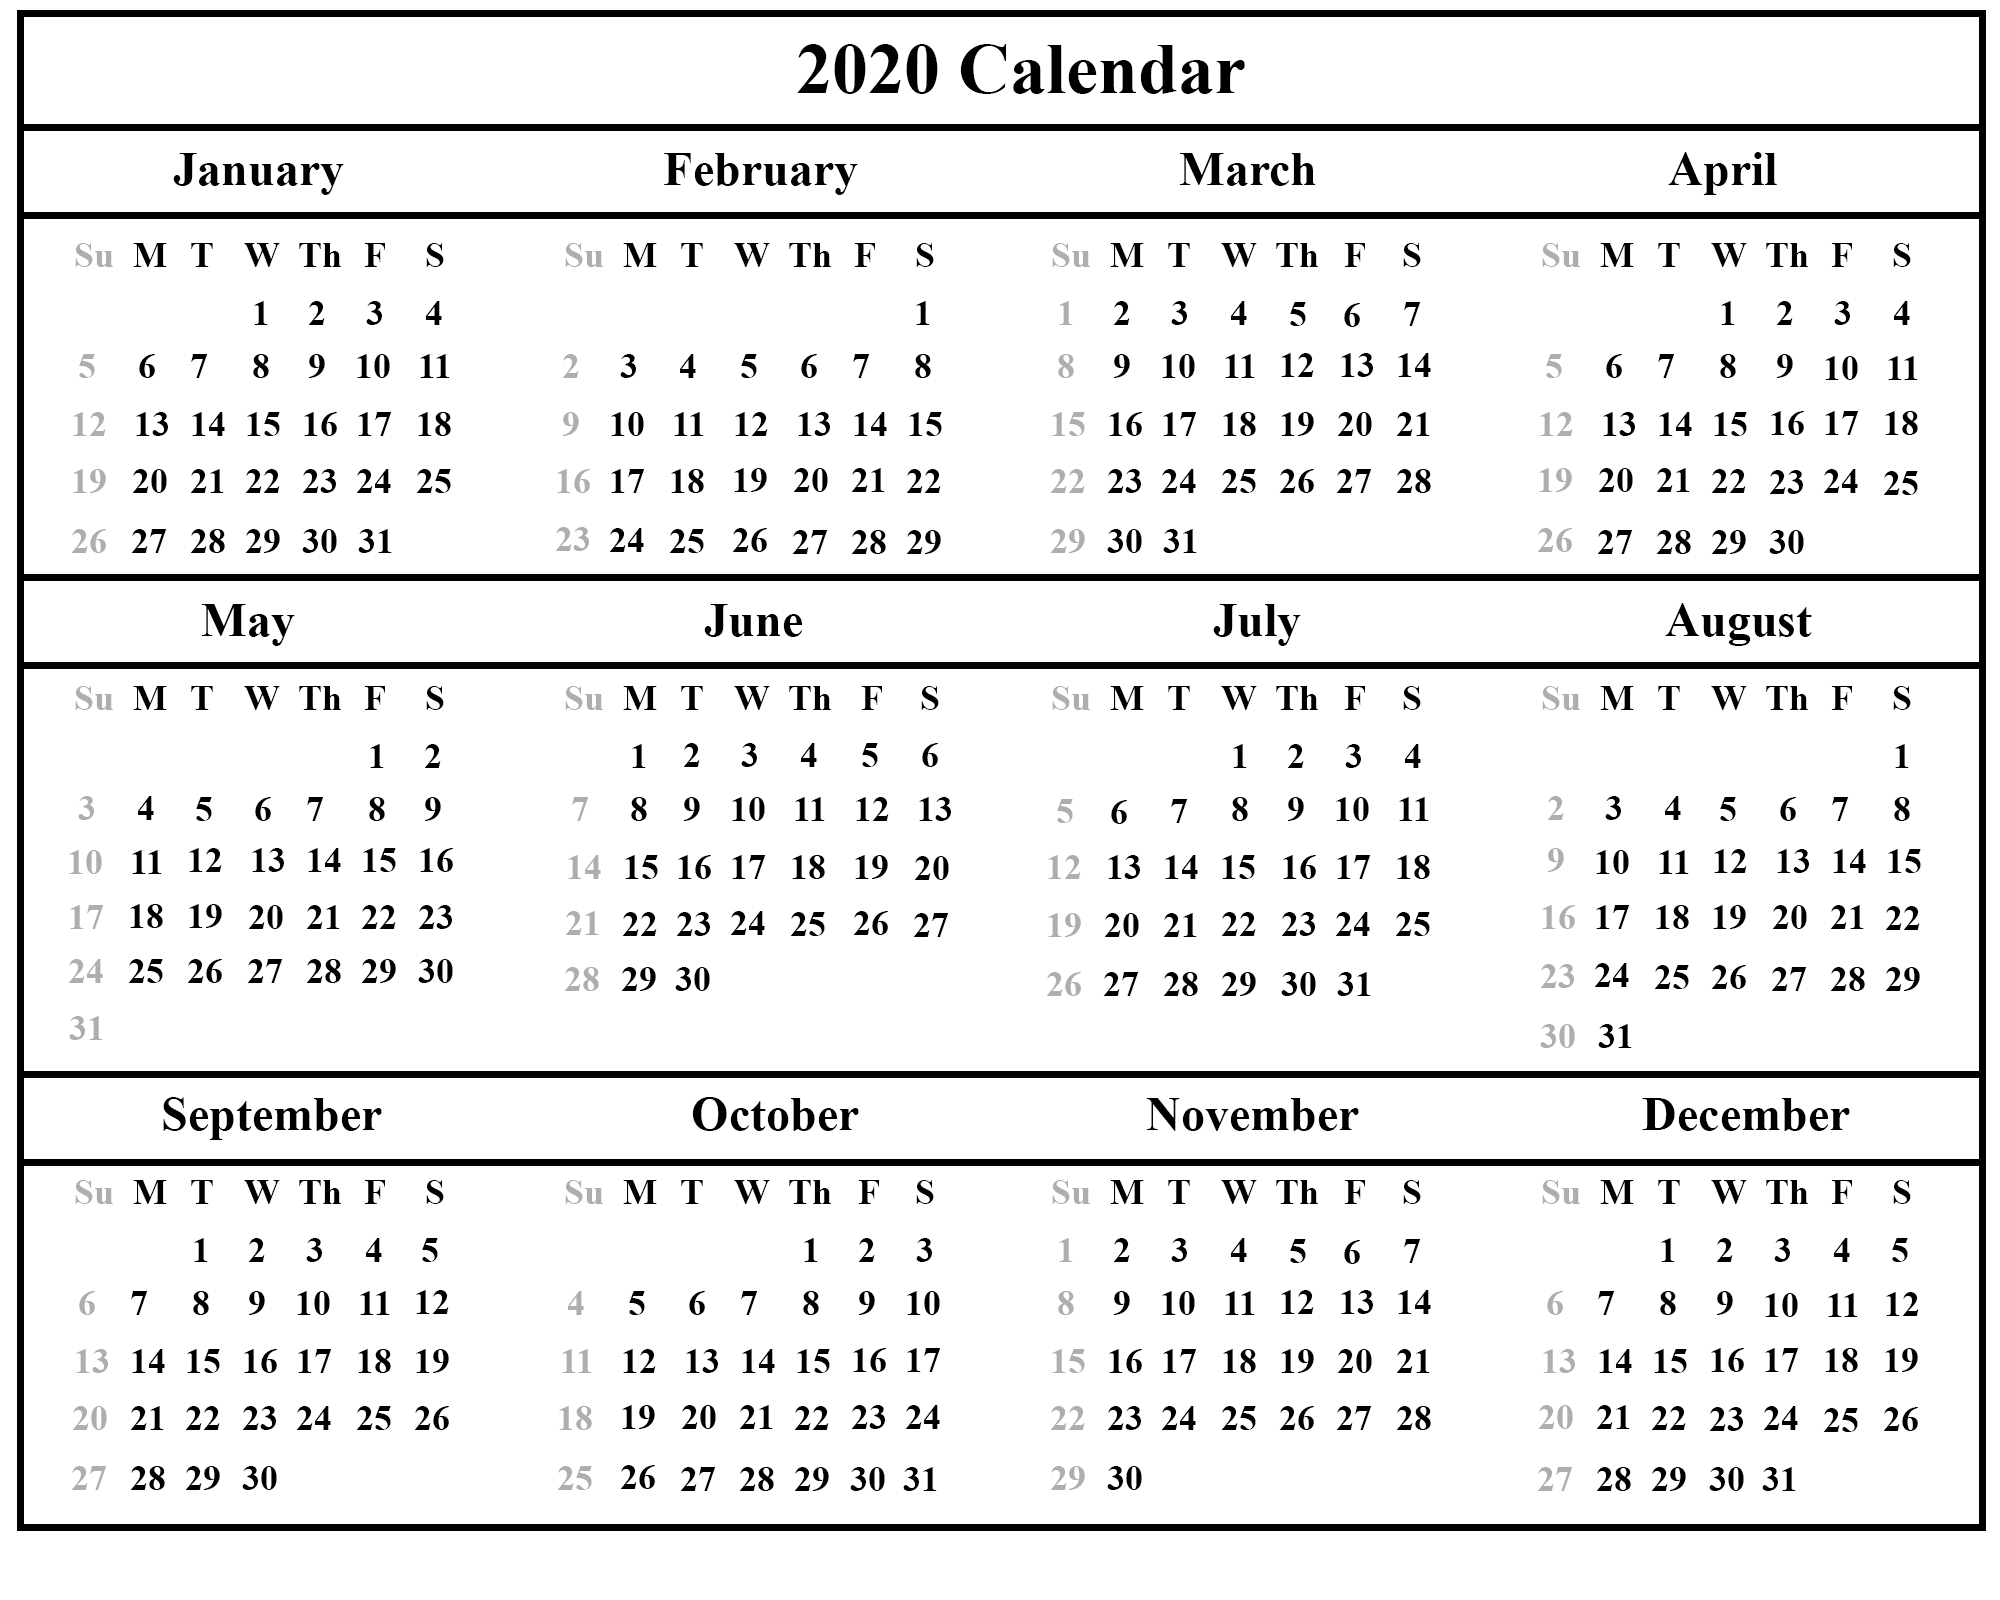 Uf Schedule 2020.Free Printable Calendar 2020 With Holidays 12 Month